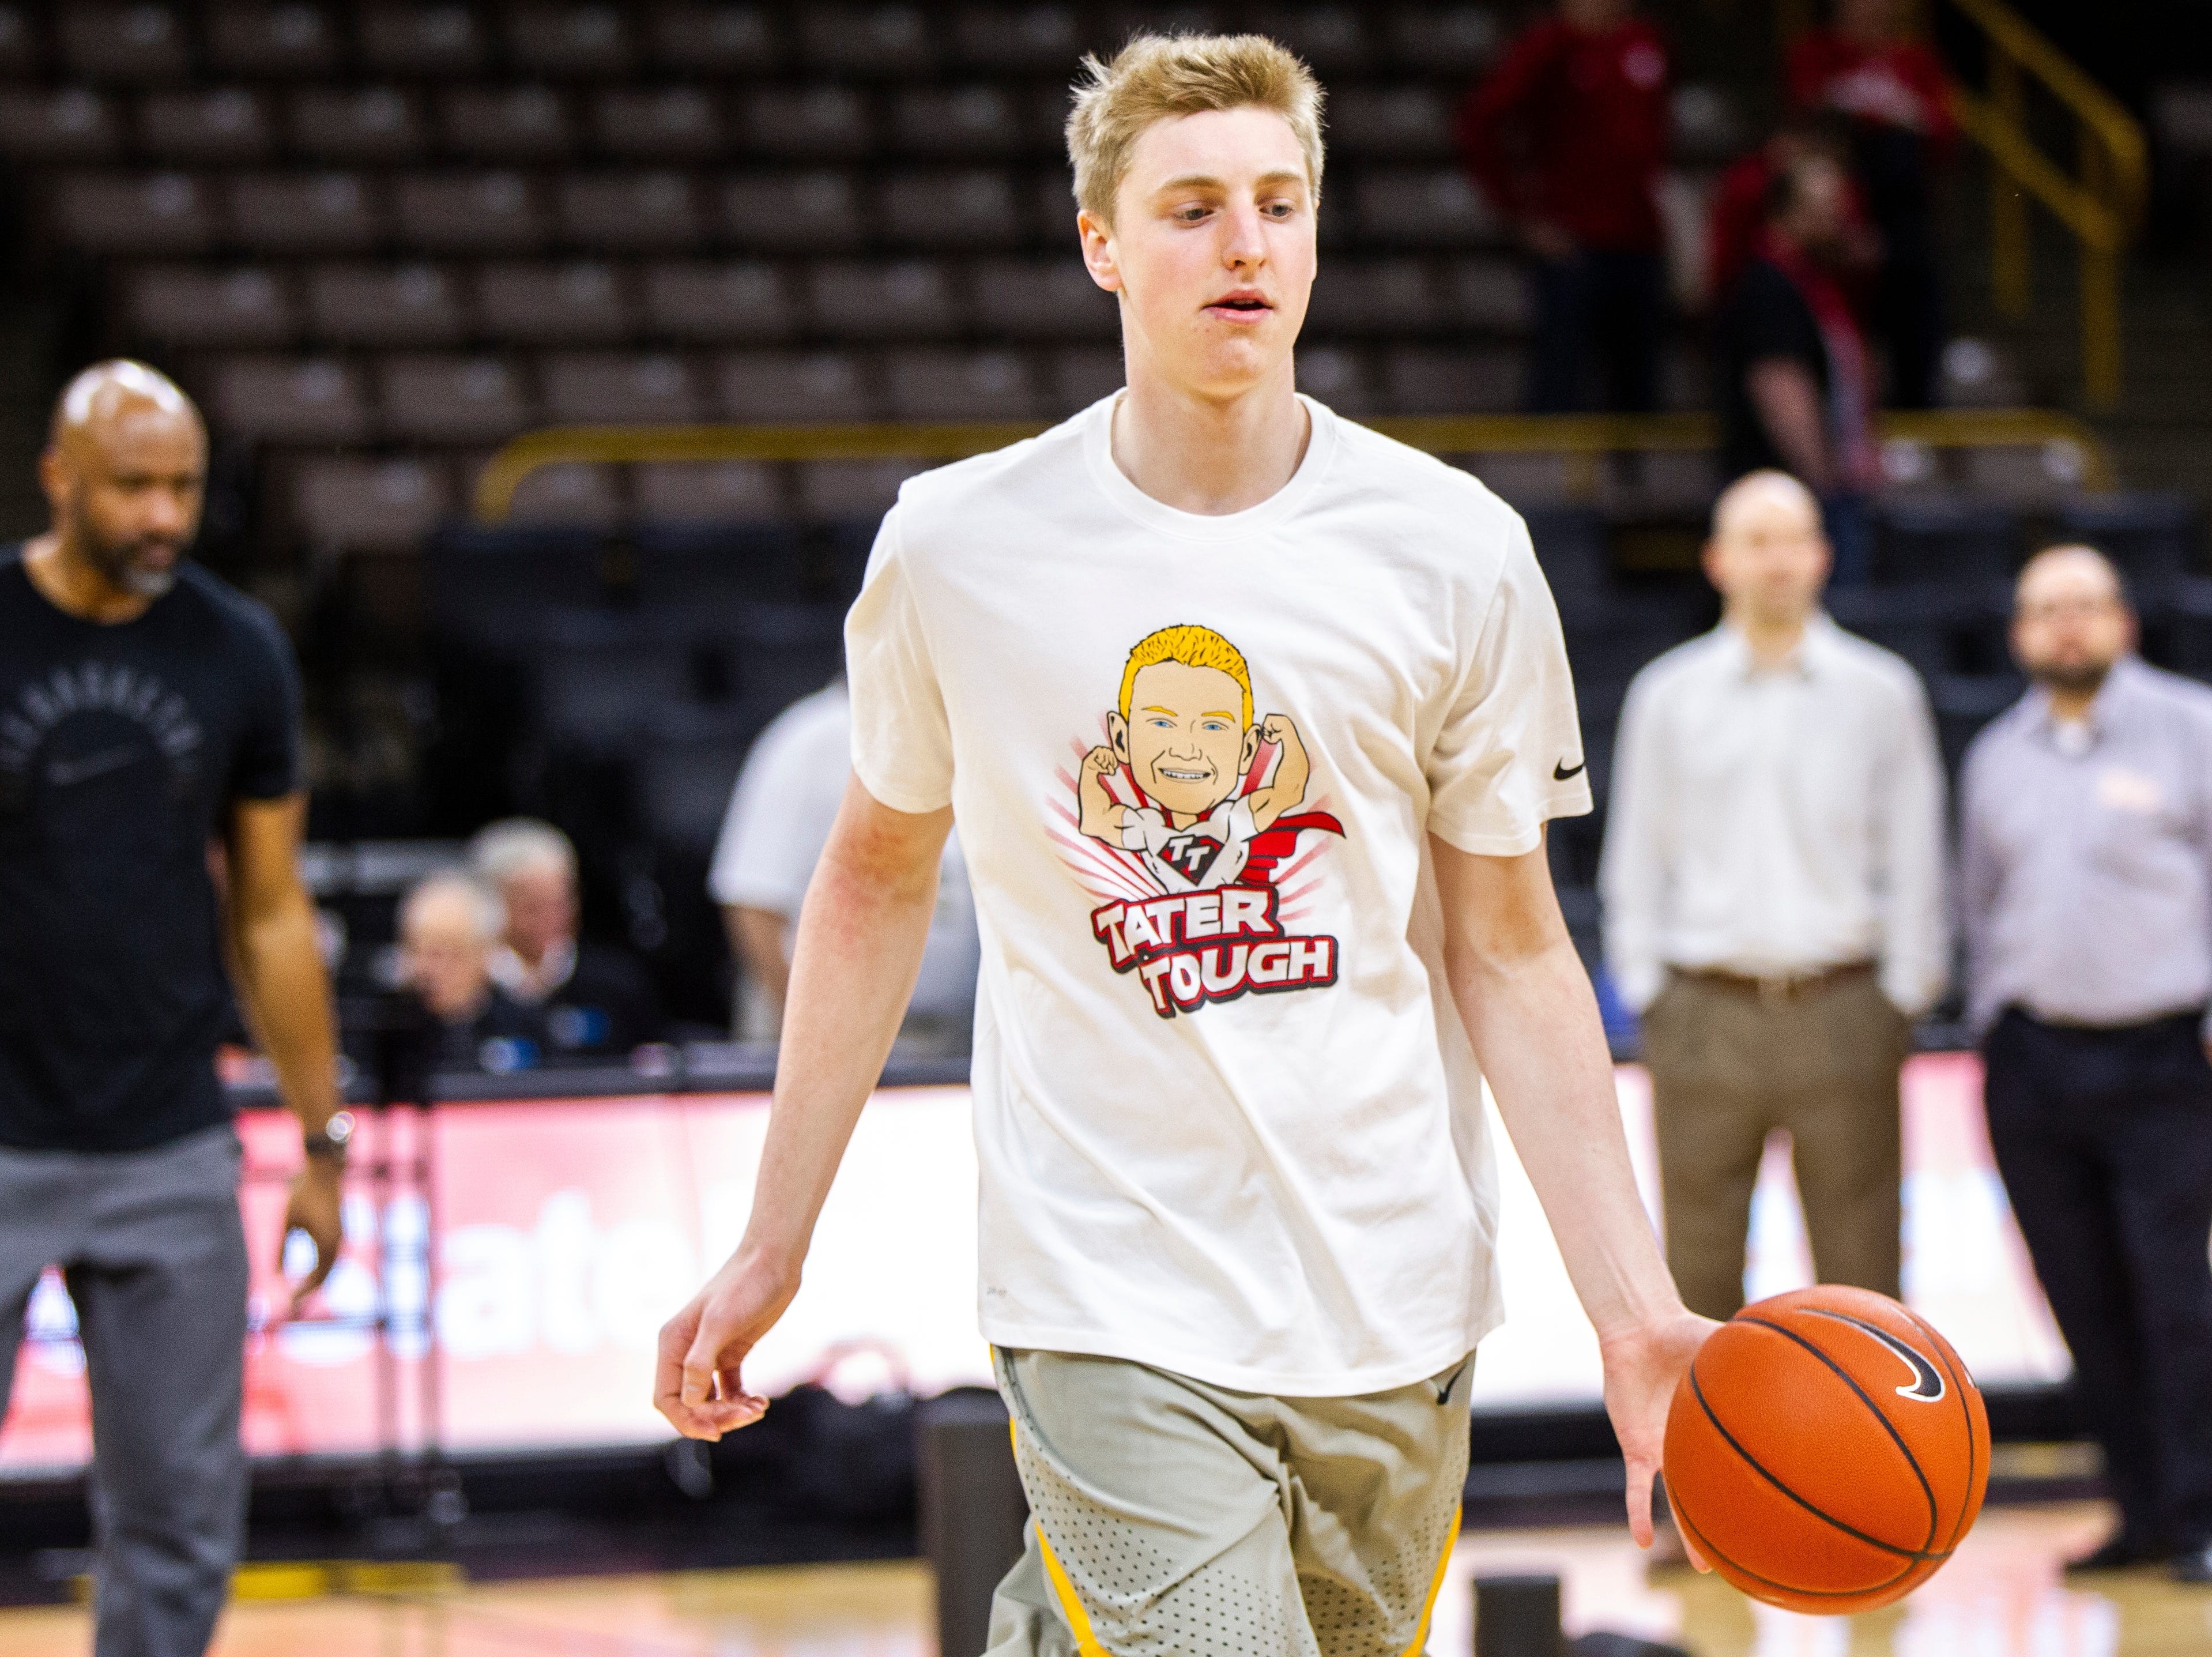 Iowa forward Michael Baer (0) warms up while wearing a shirt featuring a logo for Tate Schaefer, an 11-year-old from Williamsburg who has a tumor in his brain before a NCAA Big Ten Conference men's basketball game on Sunday, Jan. 6, 2019, at the Carver-Hawkeye Arena in Iowa City, Iowa.